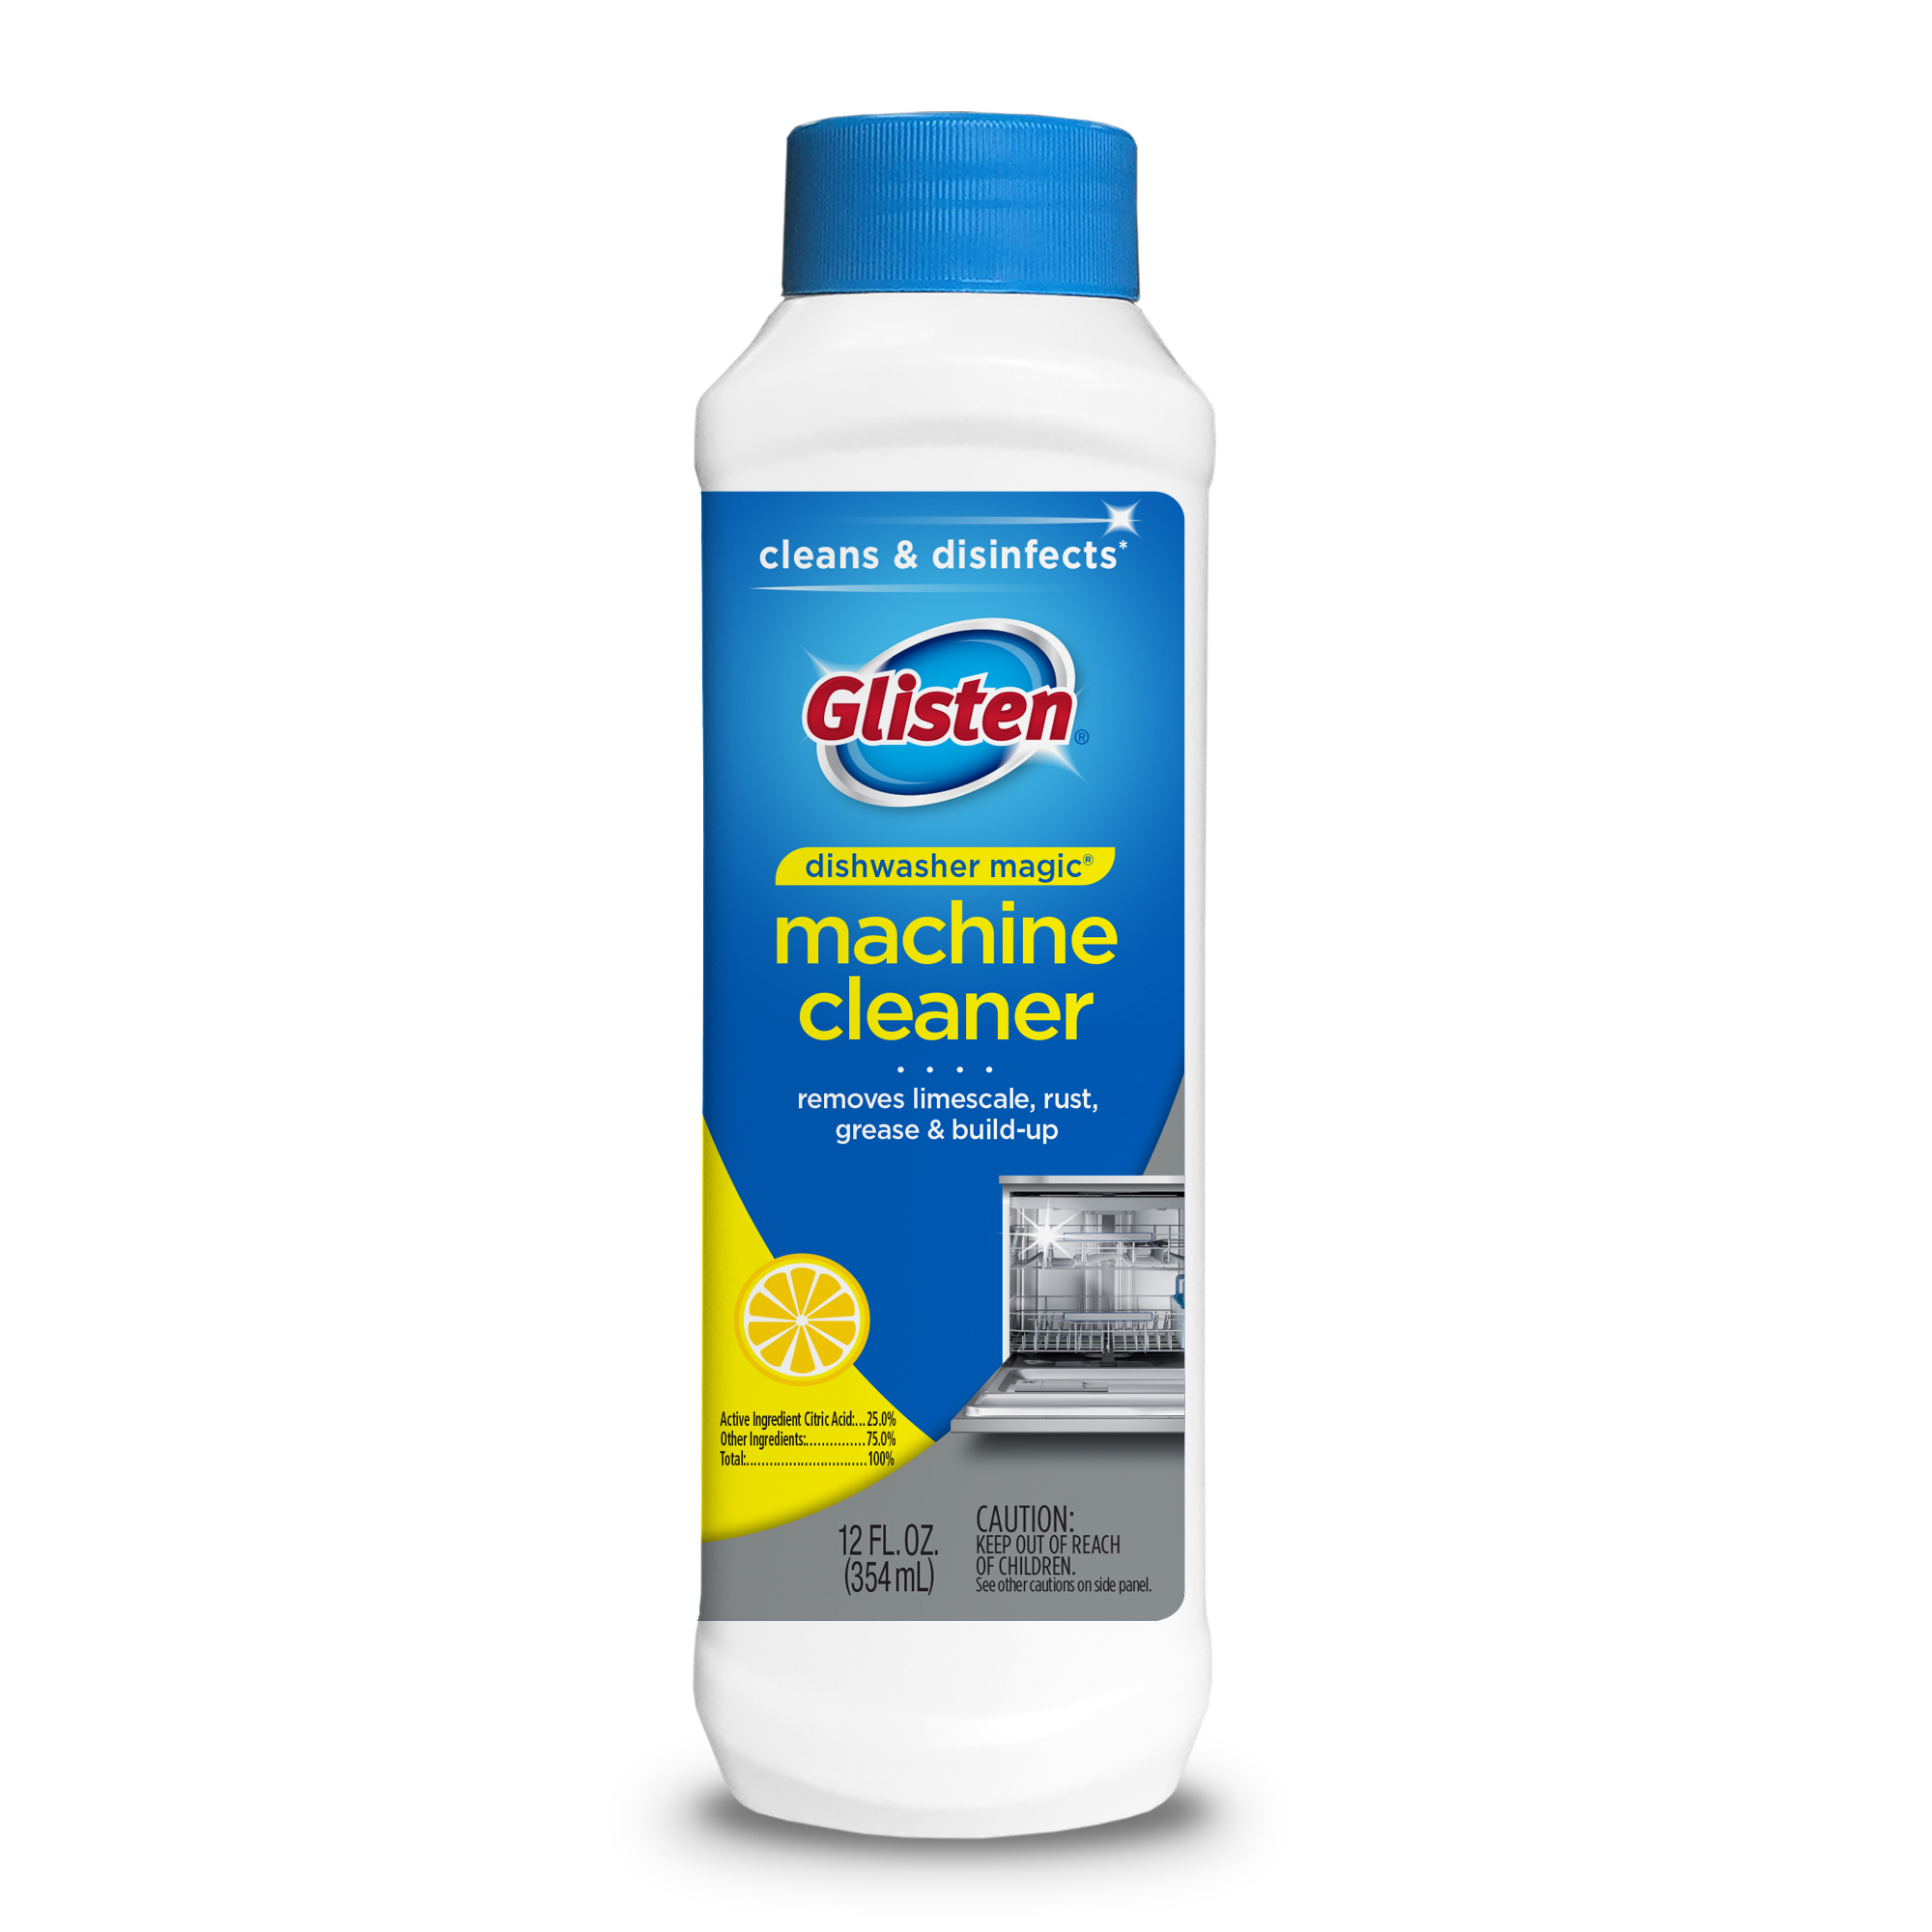 Dishwasher Magic Dishwasher Cleaner and Disinfectant, 12 Fl Oz